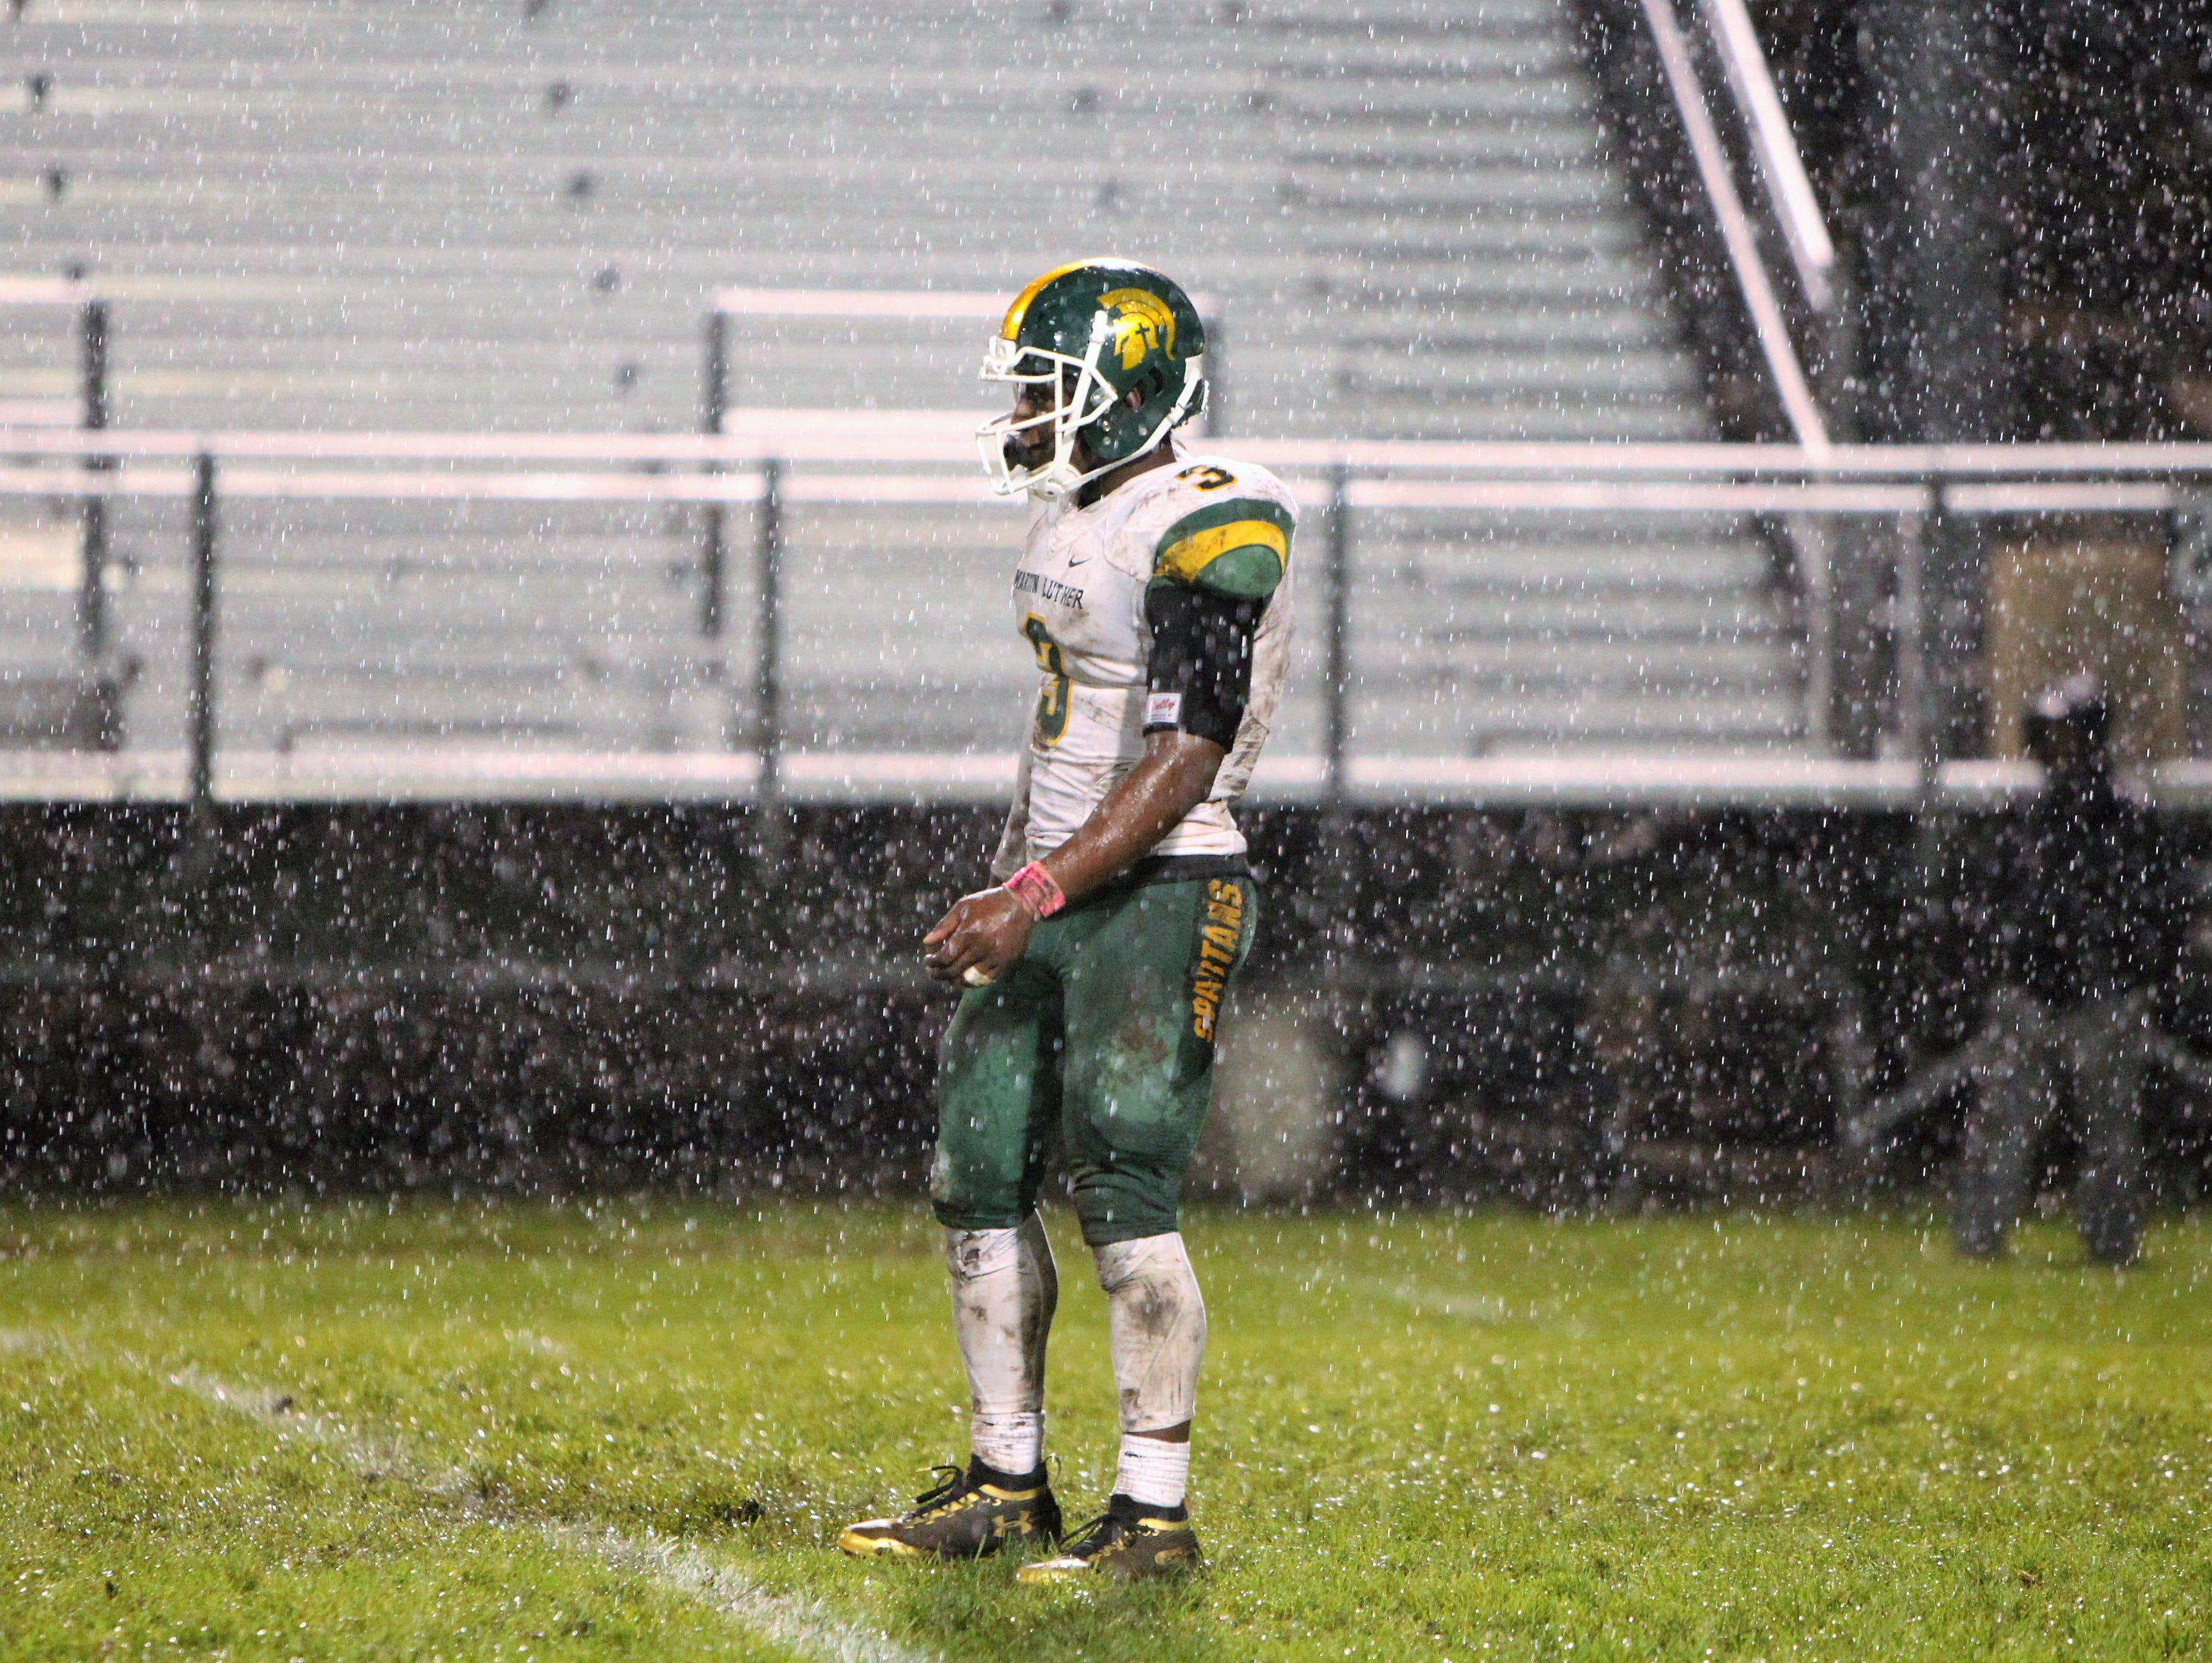 Martin Luther senior Darios Crawley-Reid awaits a kickoff in the rain against Racine St. Catherine's on Oct. 5, 2018.